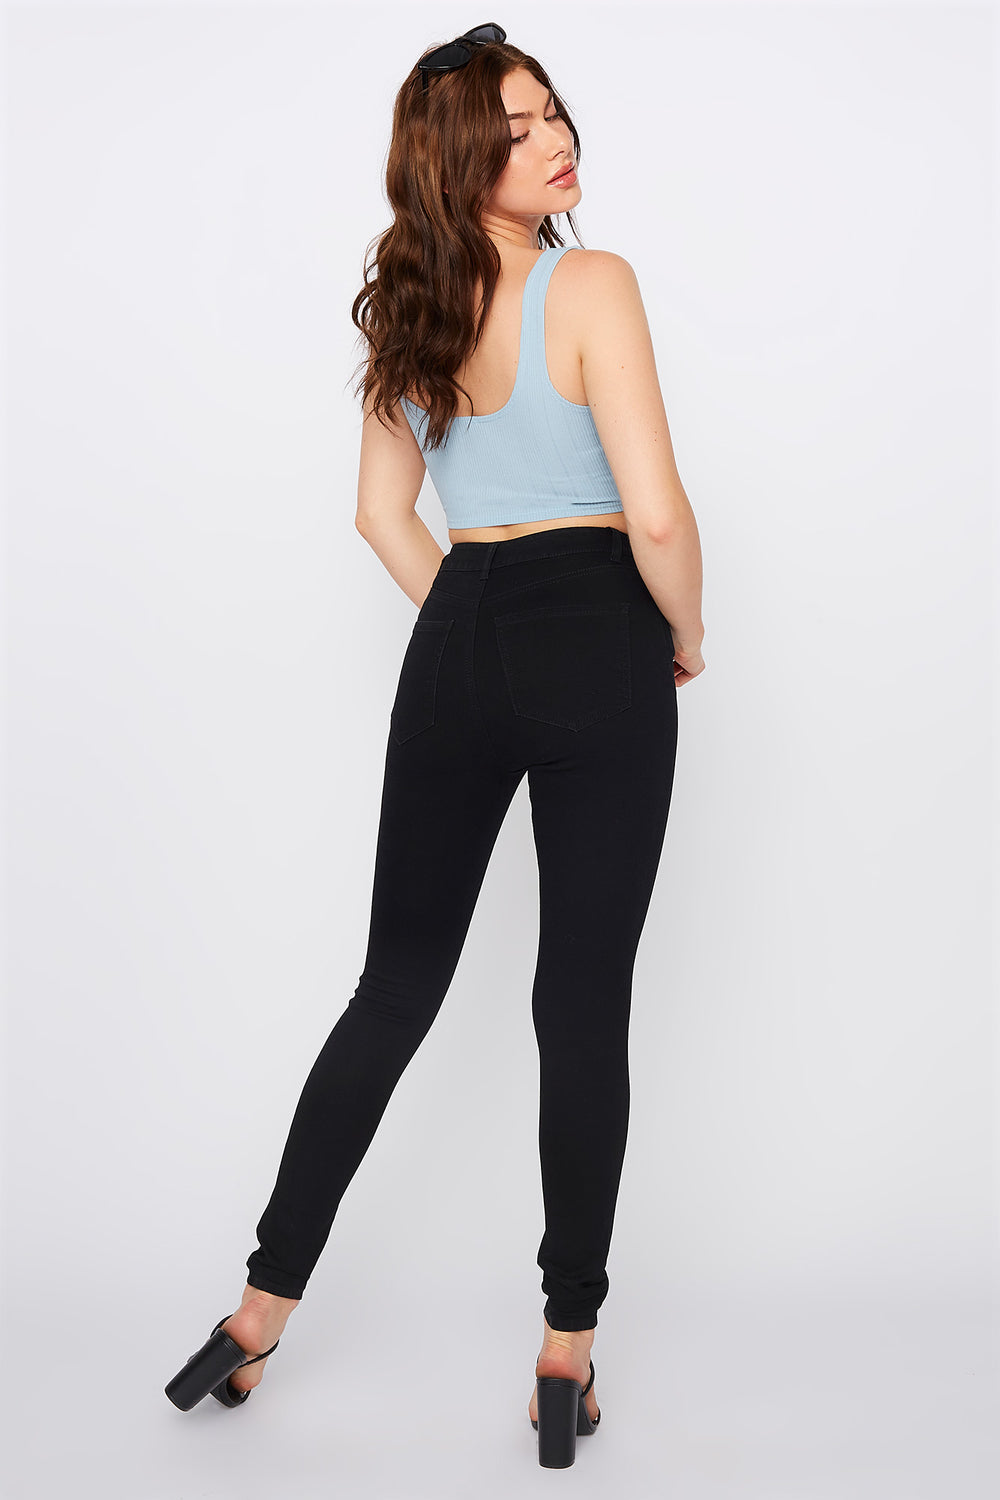 Refuge Miami High-Rise Black Distressed Skinny Jean Black